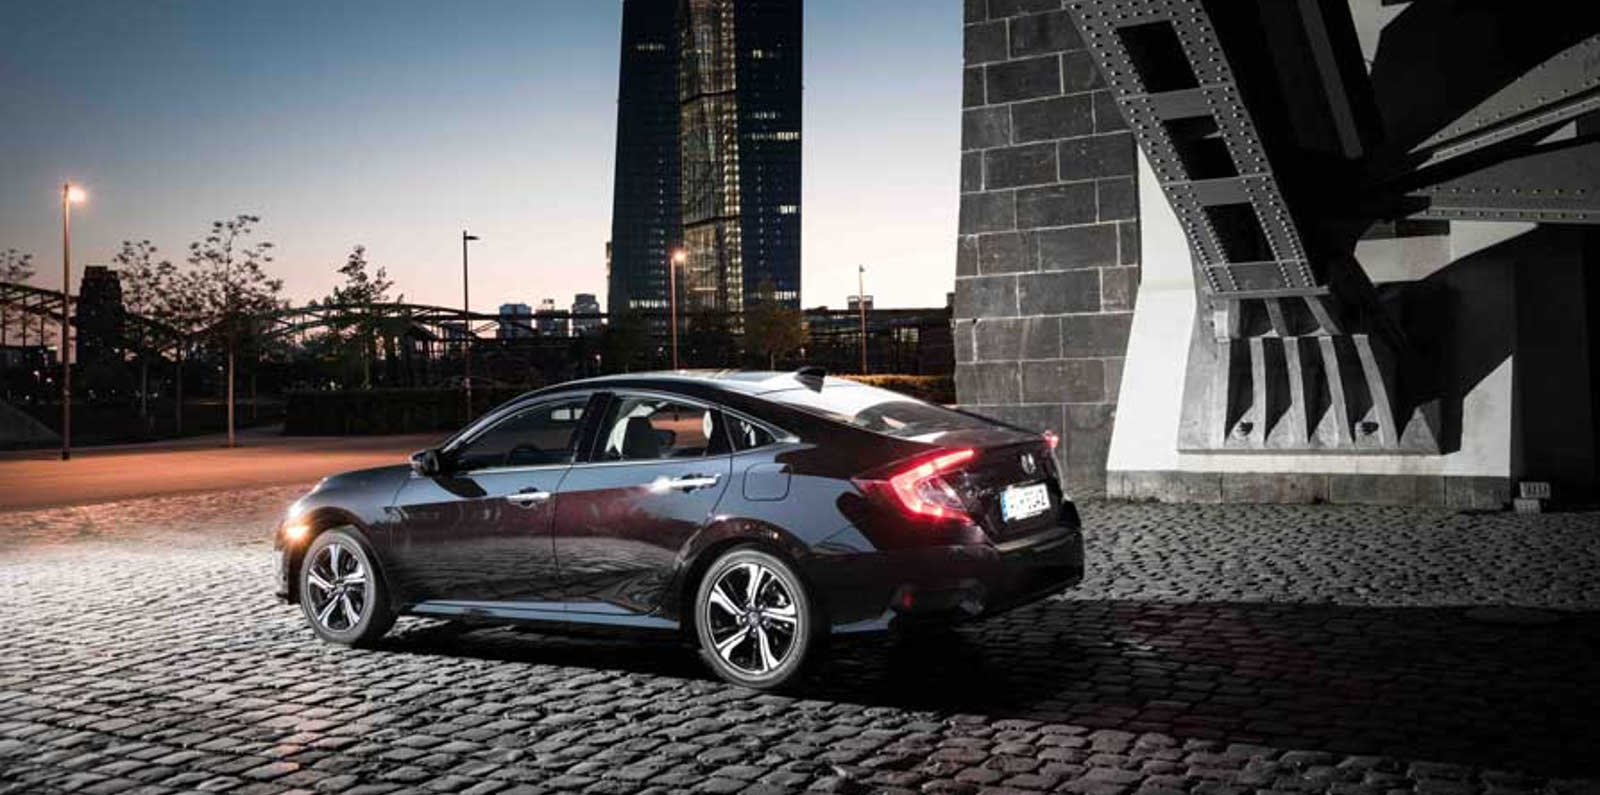 HONDA CIVIC SEDAN Funcionalitat distintiva